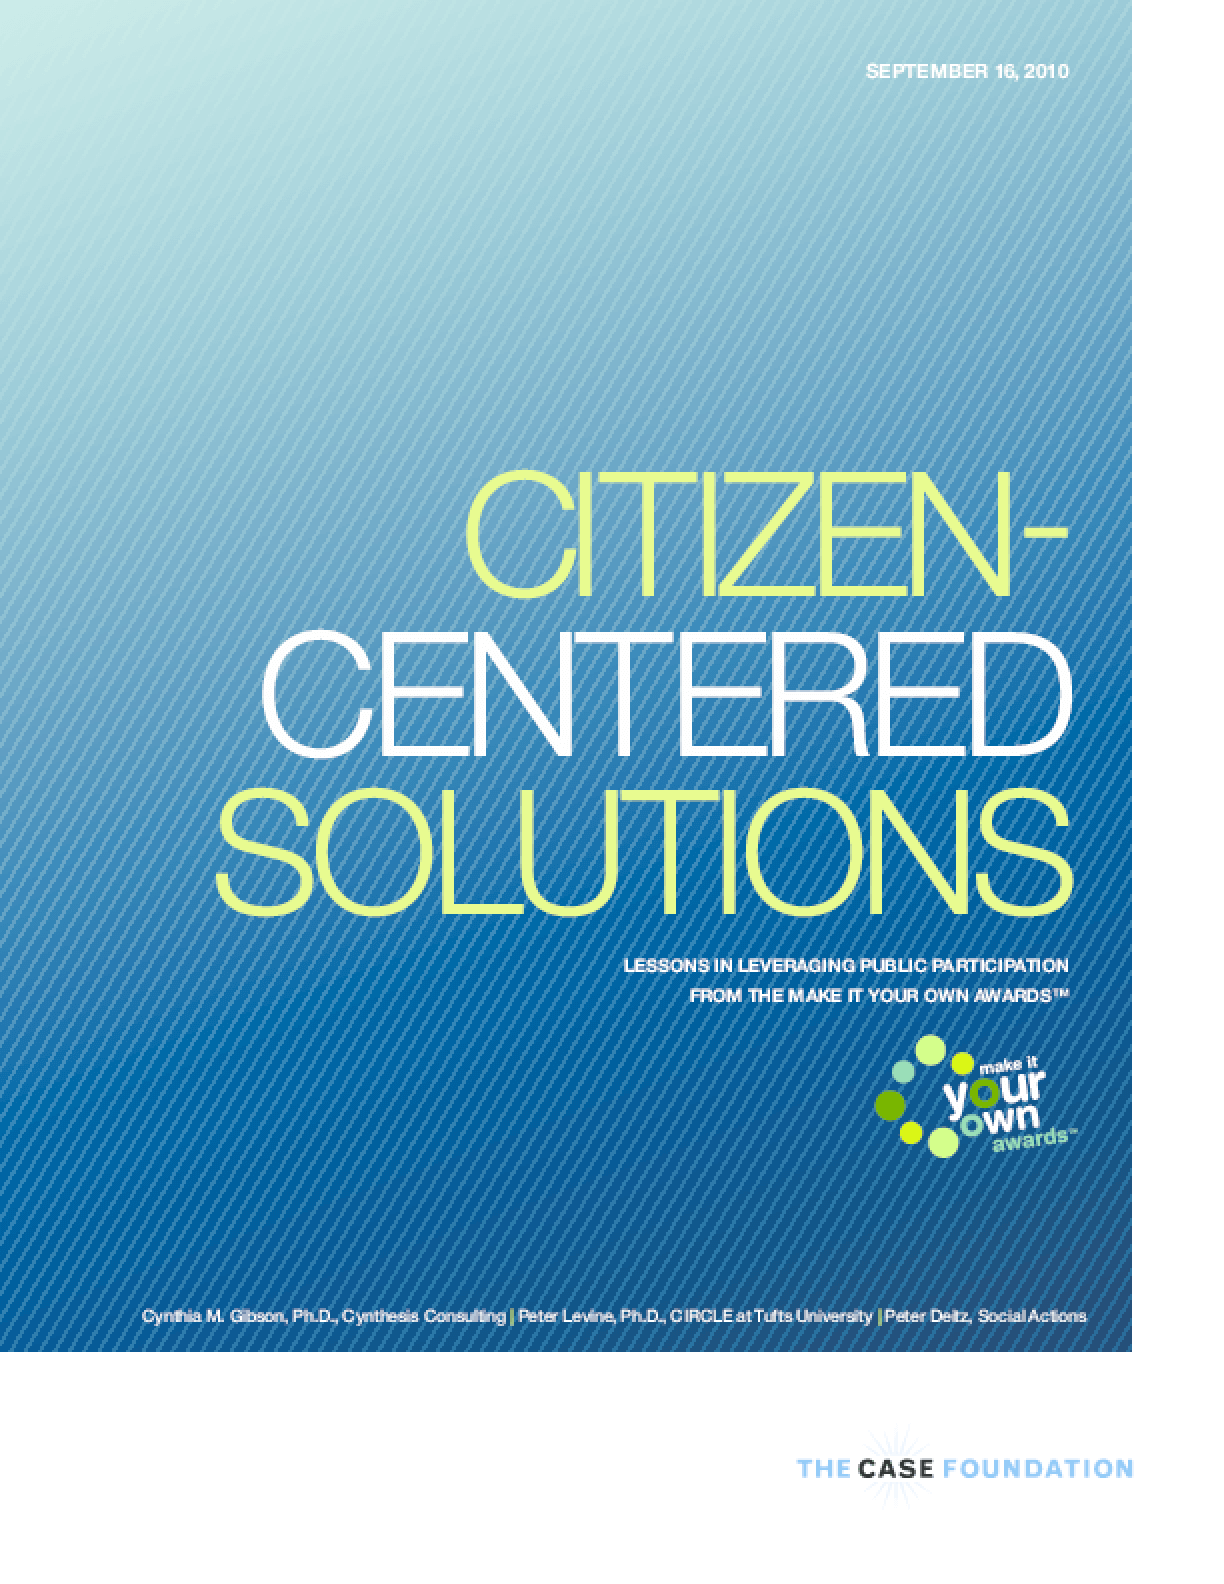 Citizen-Centered Solutions: Lessons in Leveraging Public Participation from the Make It Your Own Awards